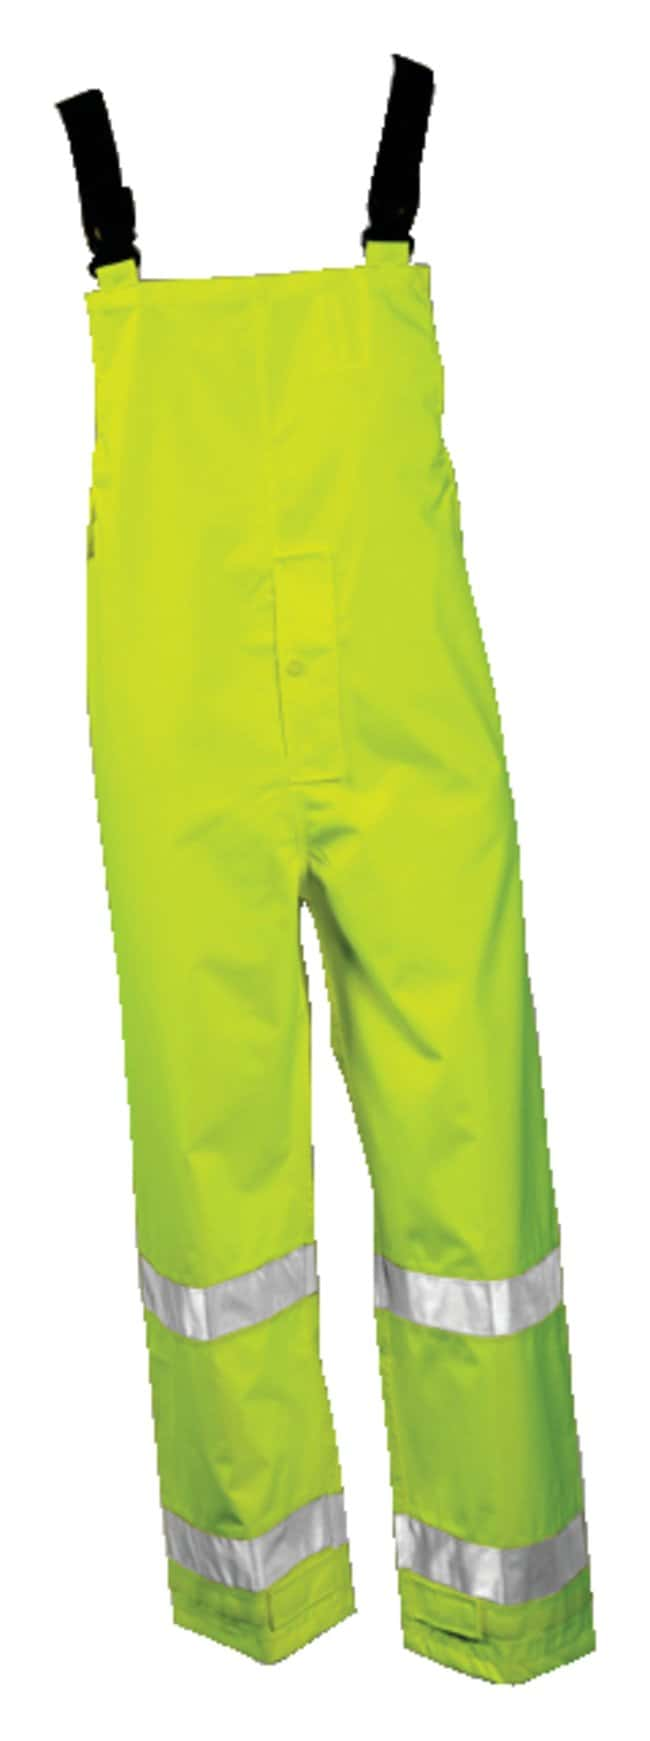 Tingley Icon Premium Outerwear Bib overall; Large:Gloves, Glasses and Safety